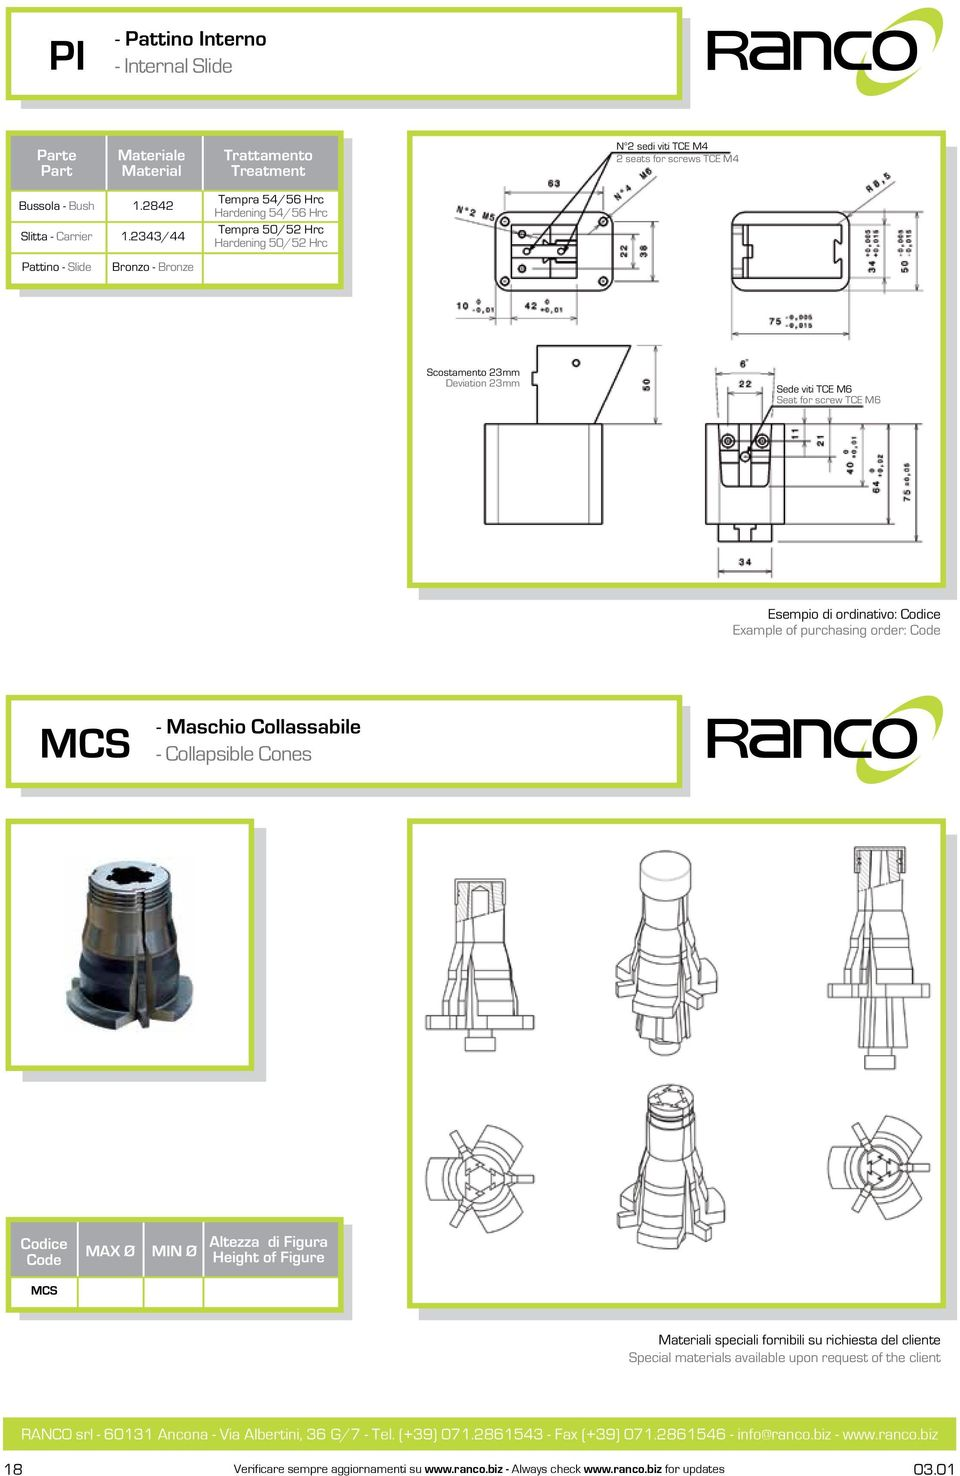 ordinativo: Example of purchasing order: MCS - Maschio Collassabile - Collapsible Cones MCS MAX Ø MIN Ø Altezza di Figura eight of Figure Materiali speciali fornibili su richiesta del